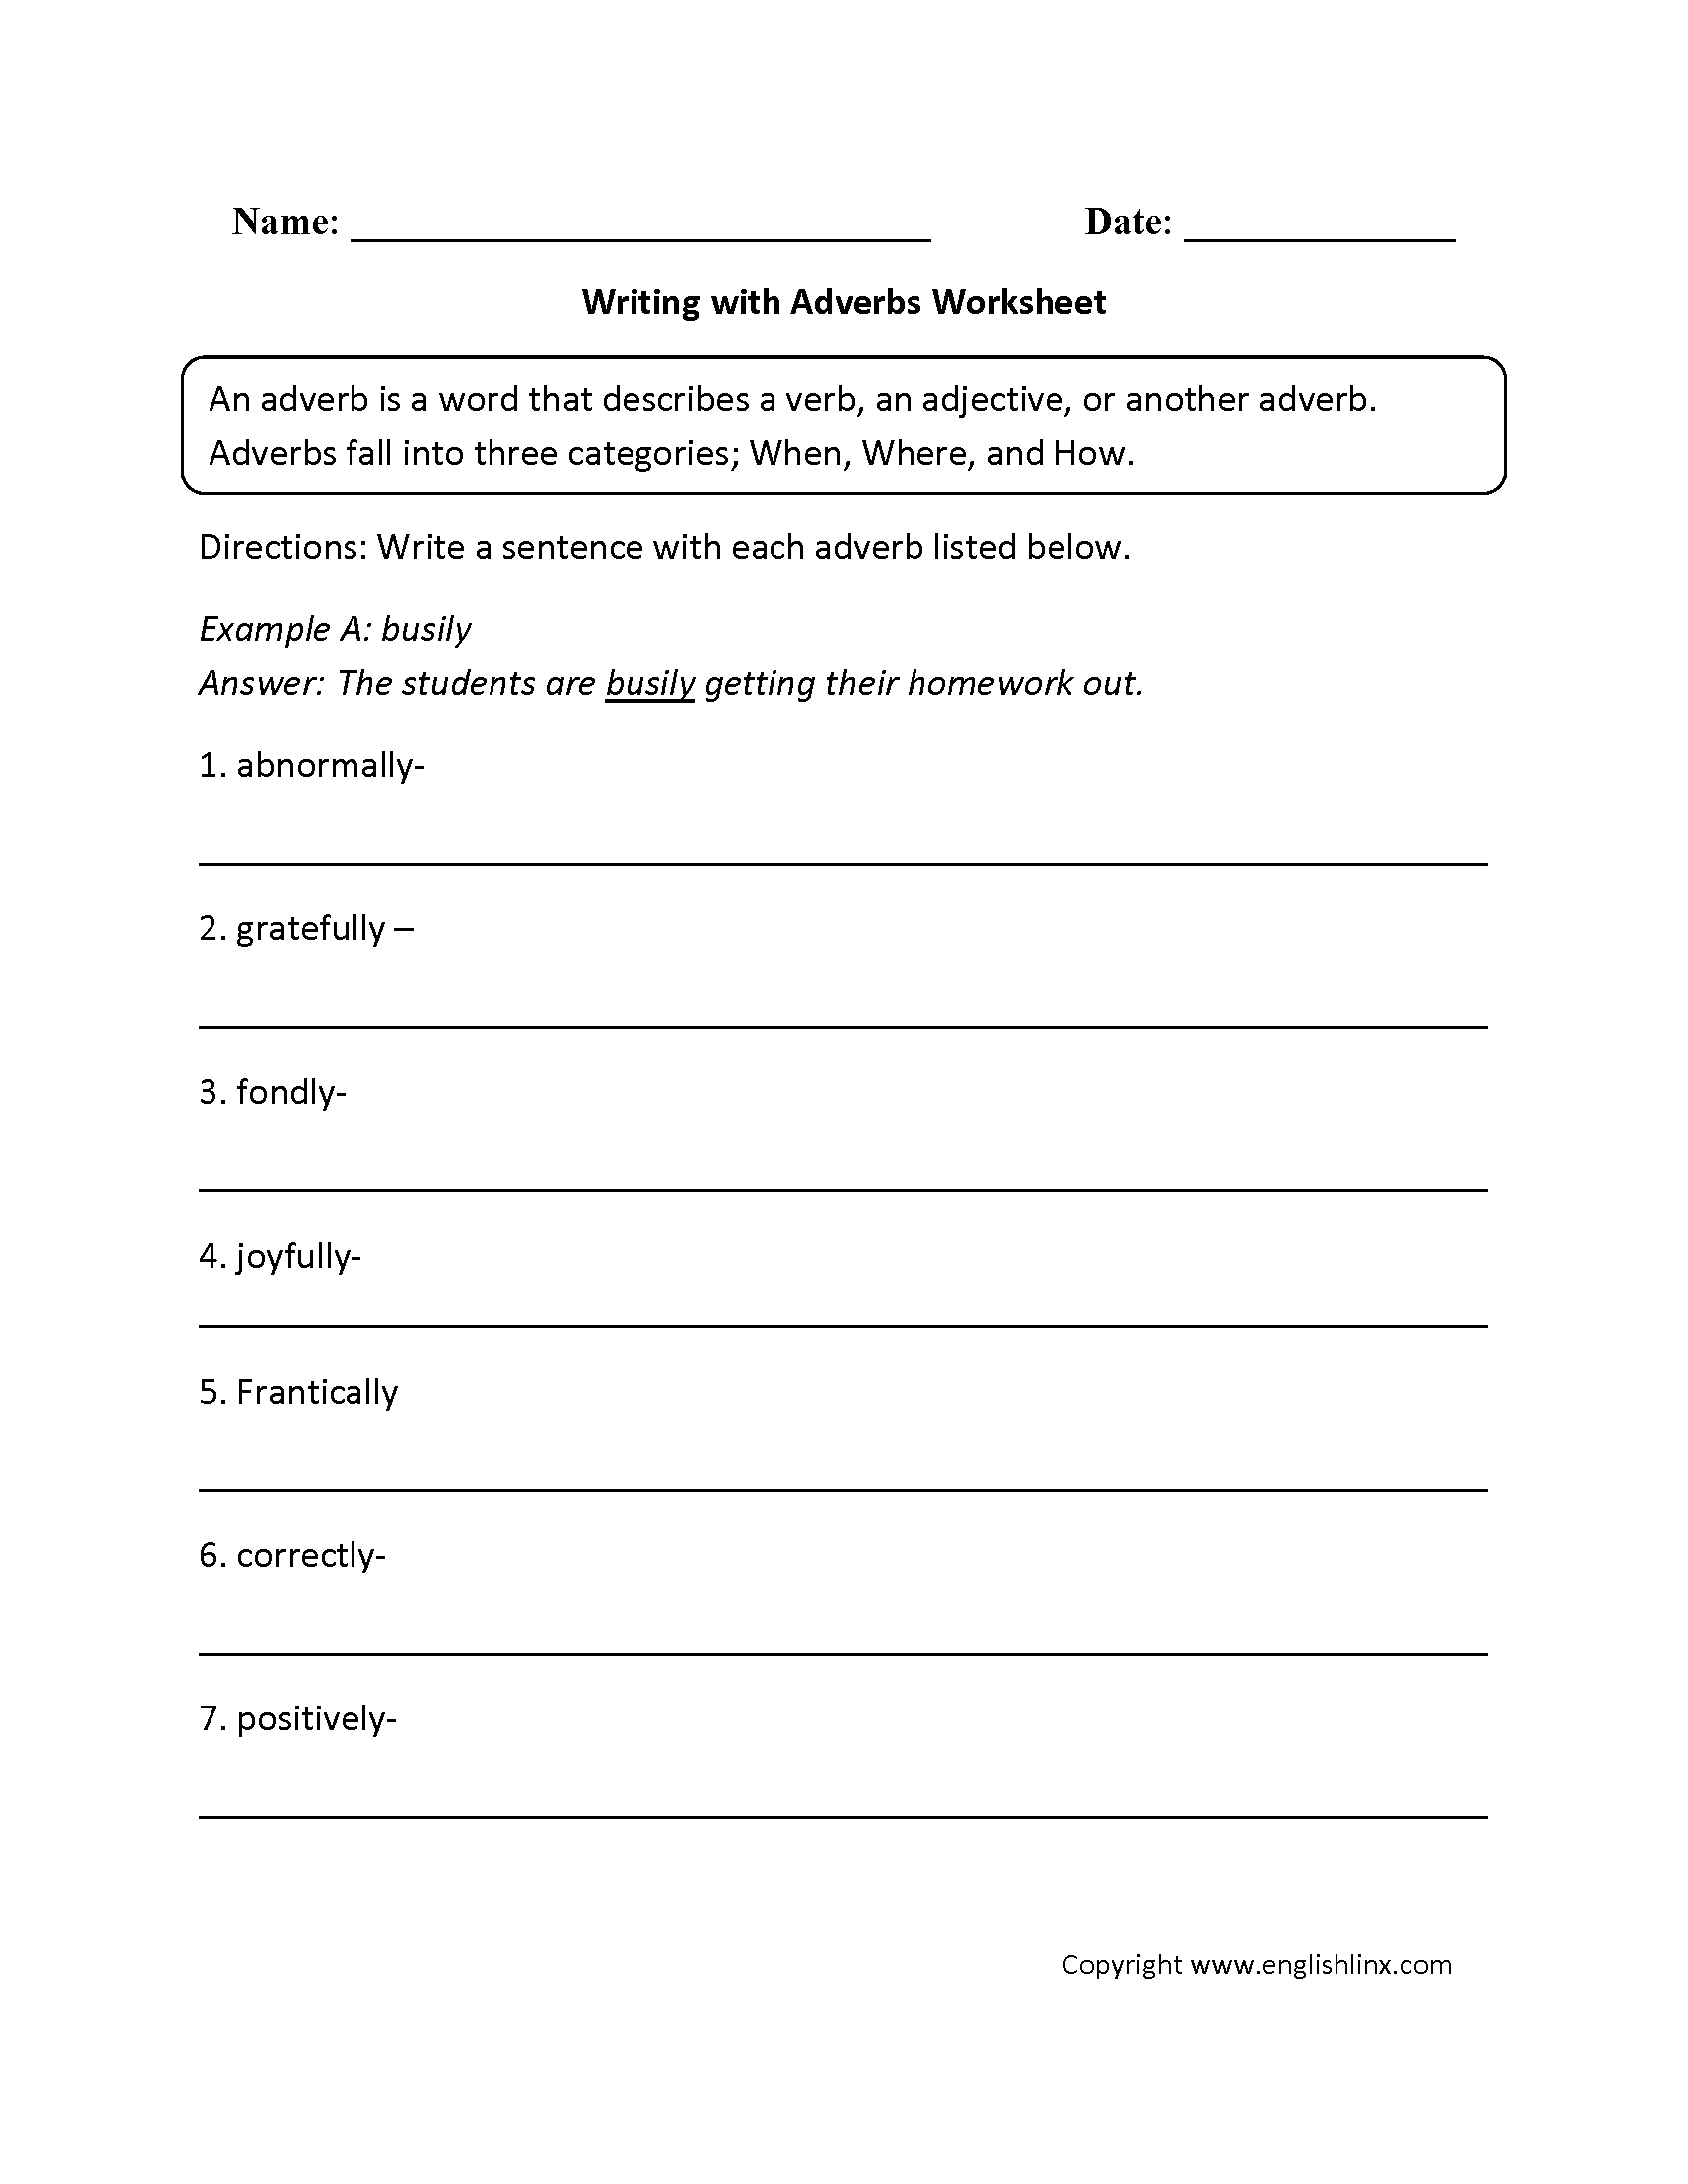 Regular Adverbs Worksheets